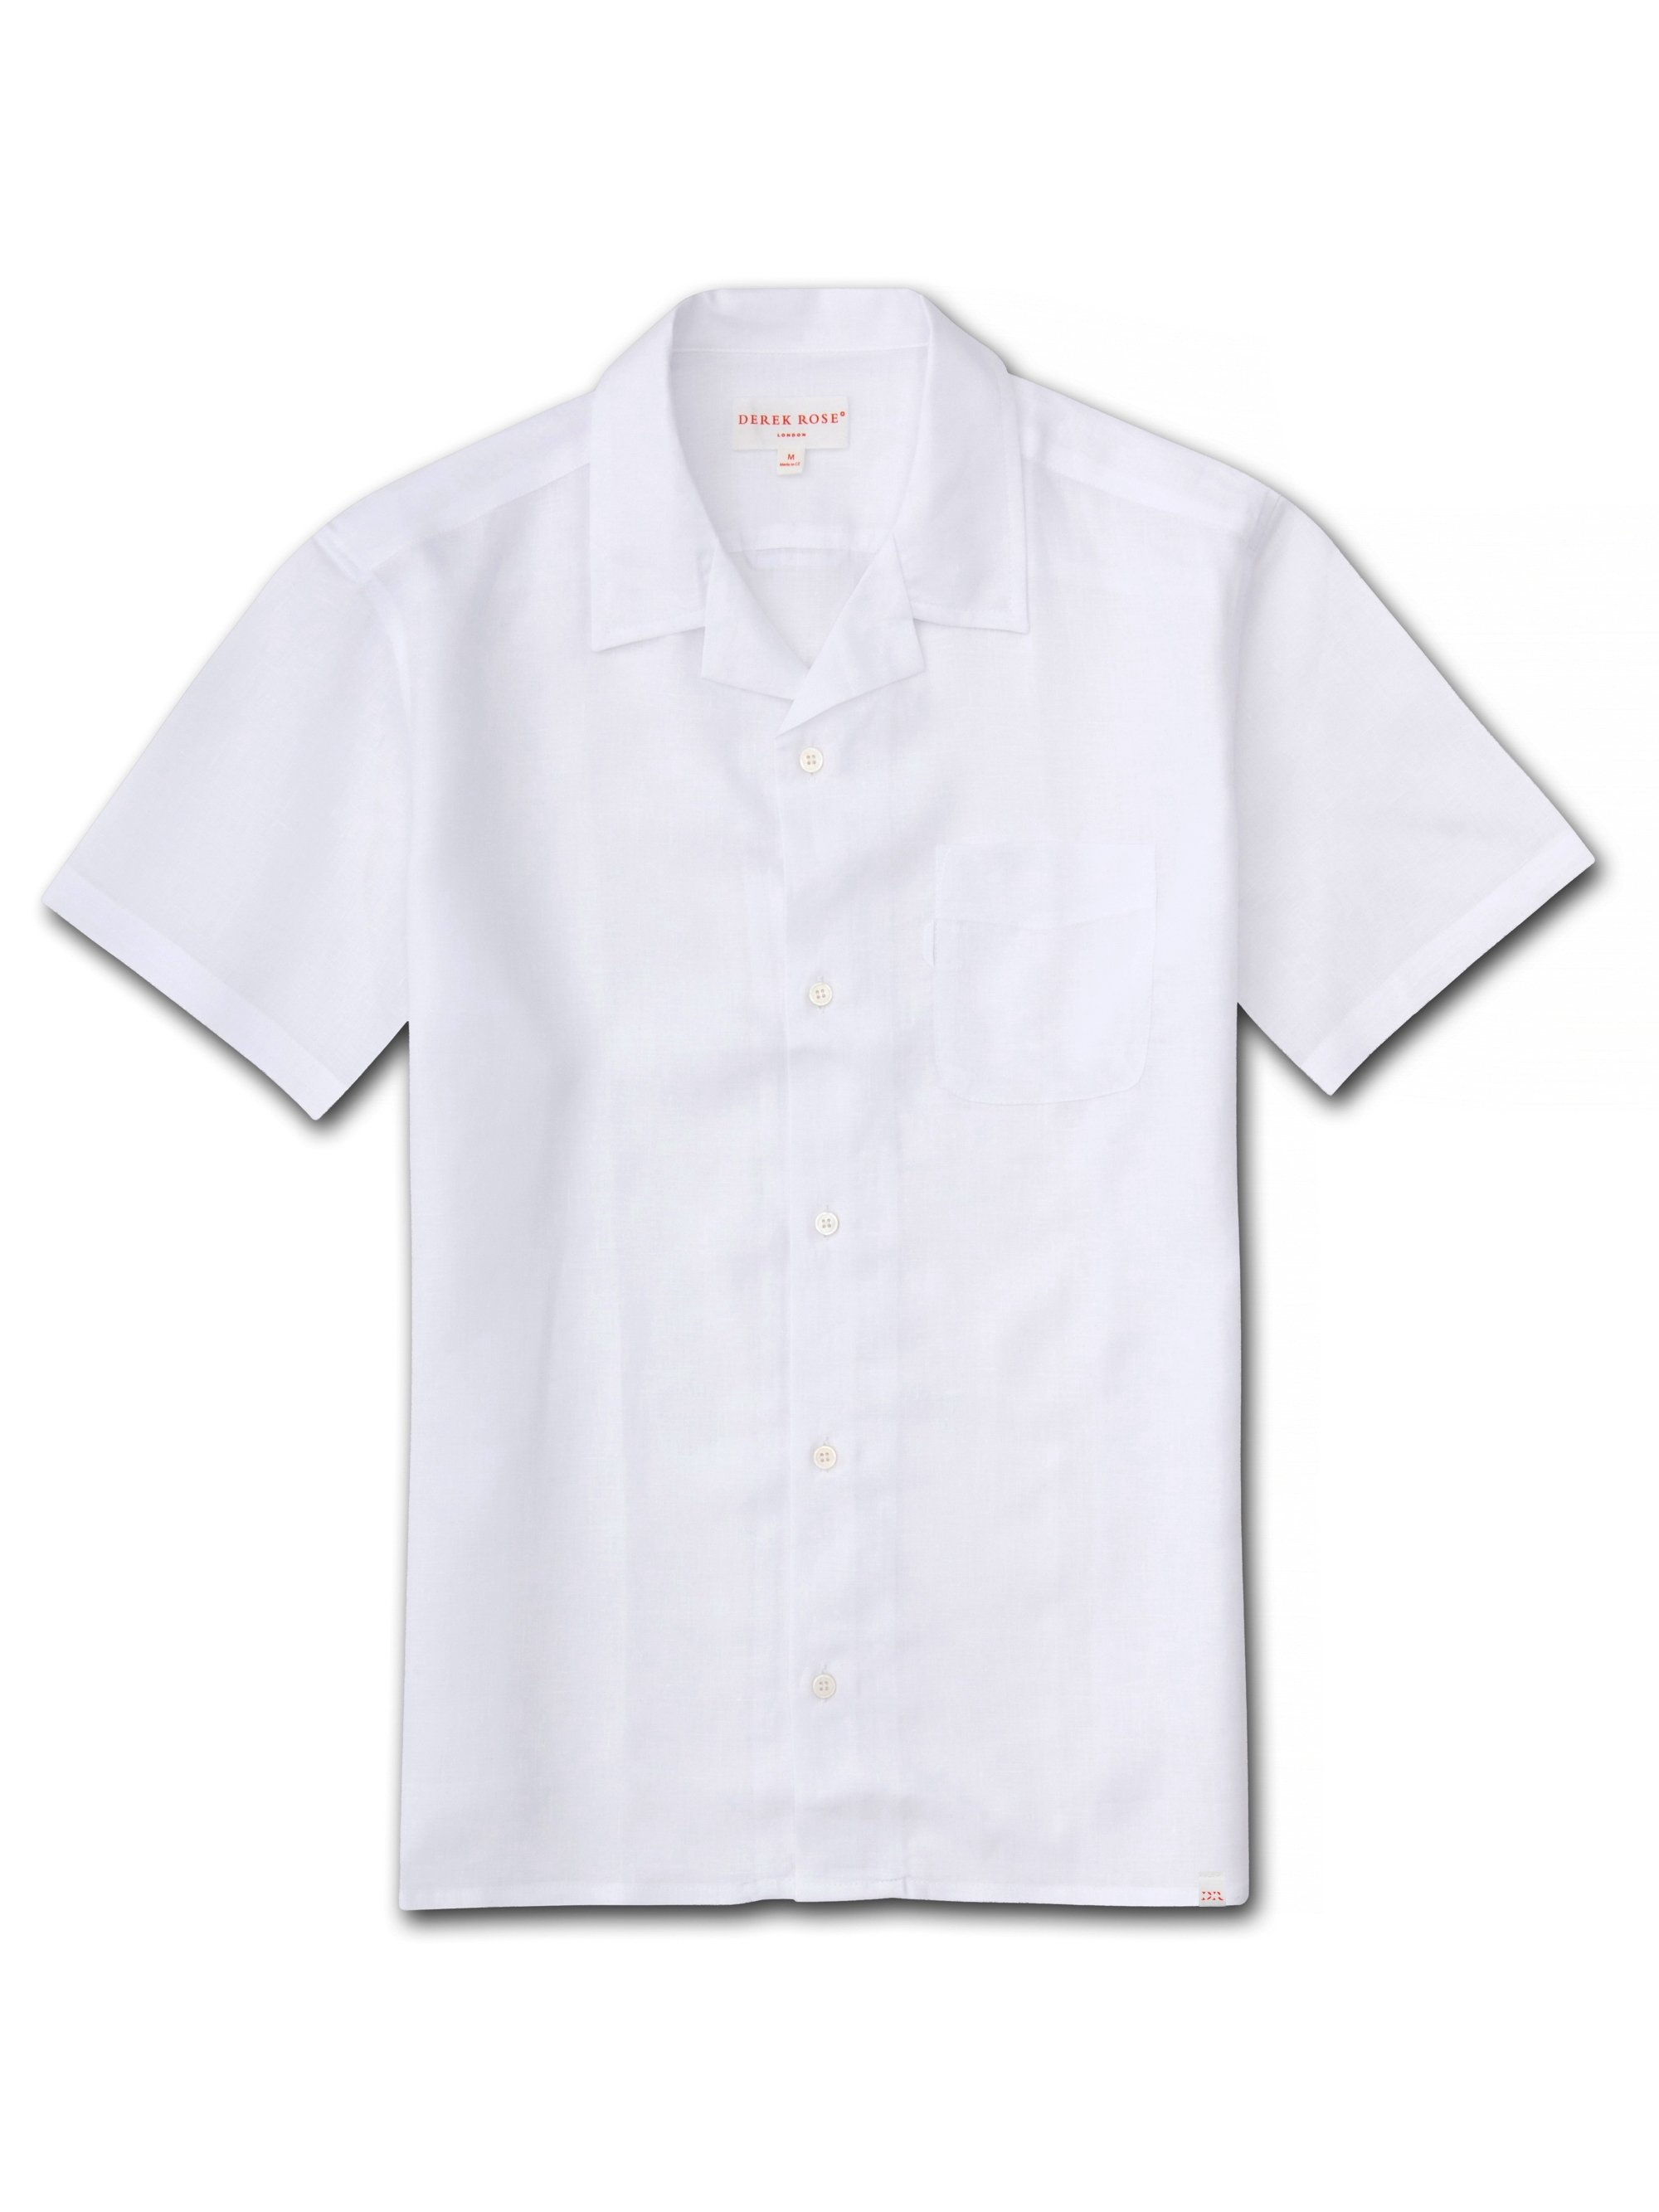 Men's Linen Short Sleeve Shirt Monaco Pure Linen White